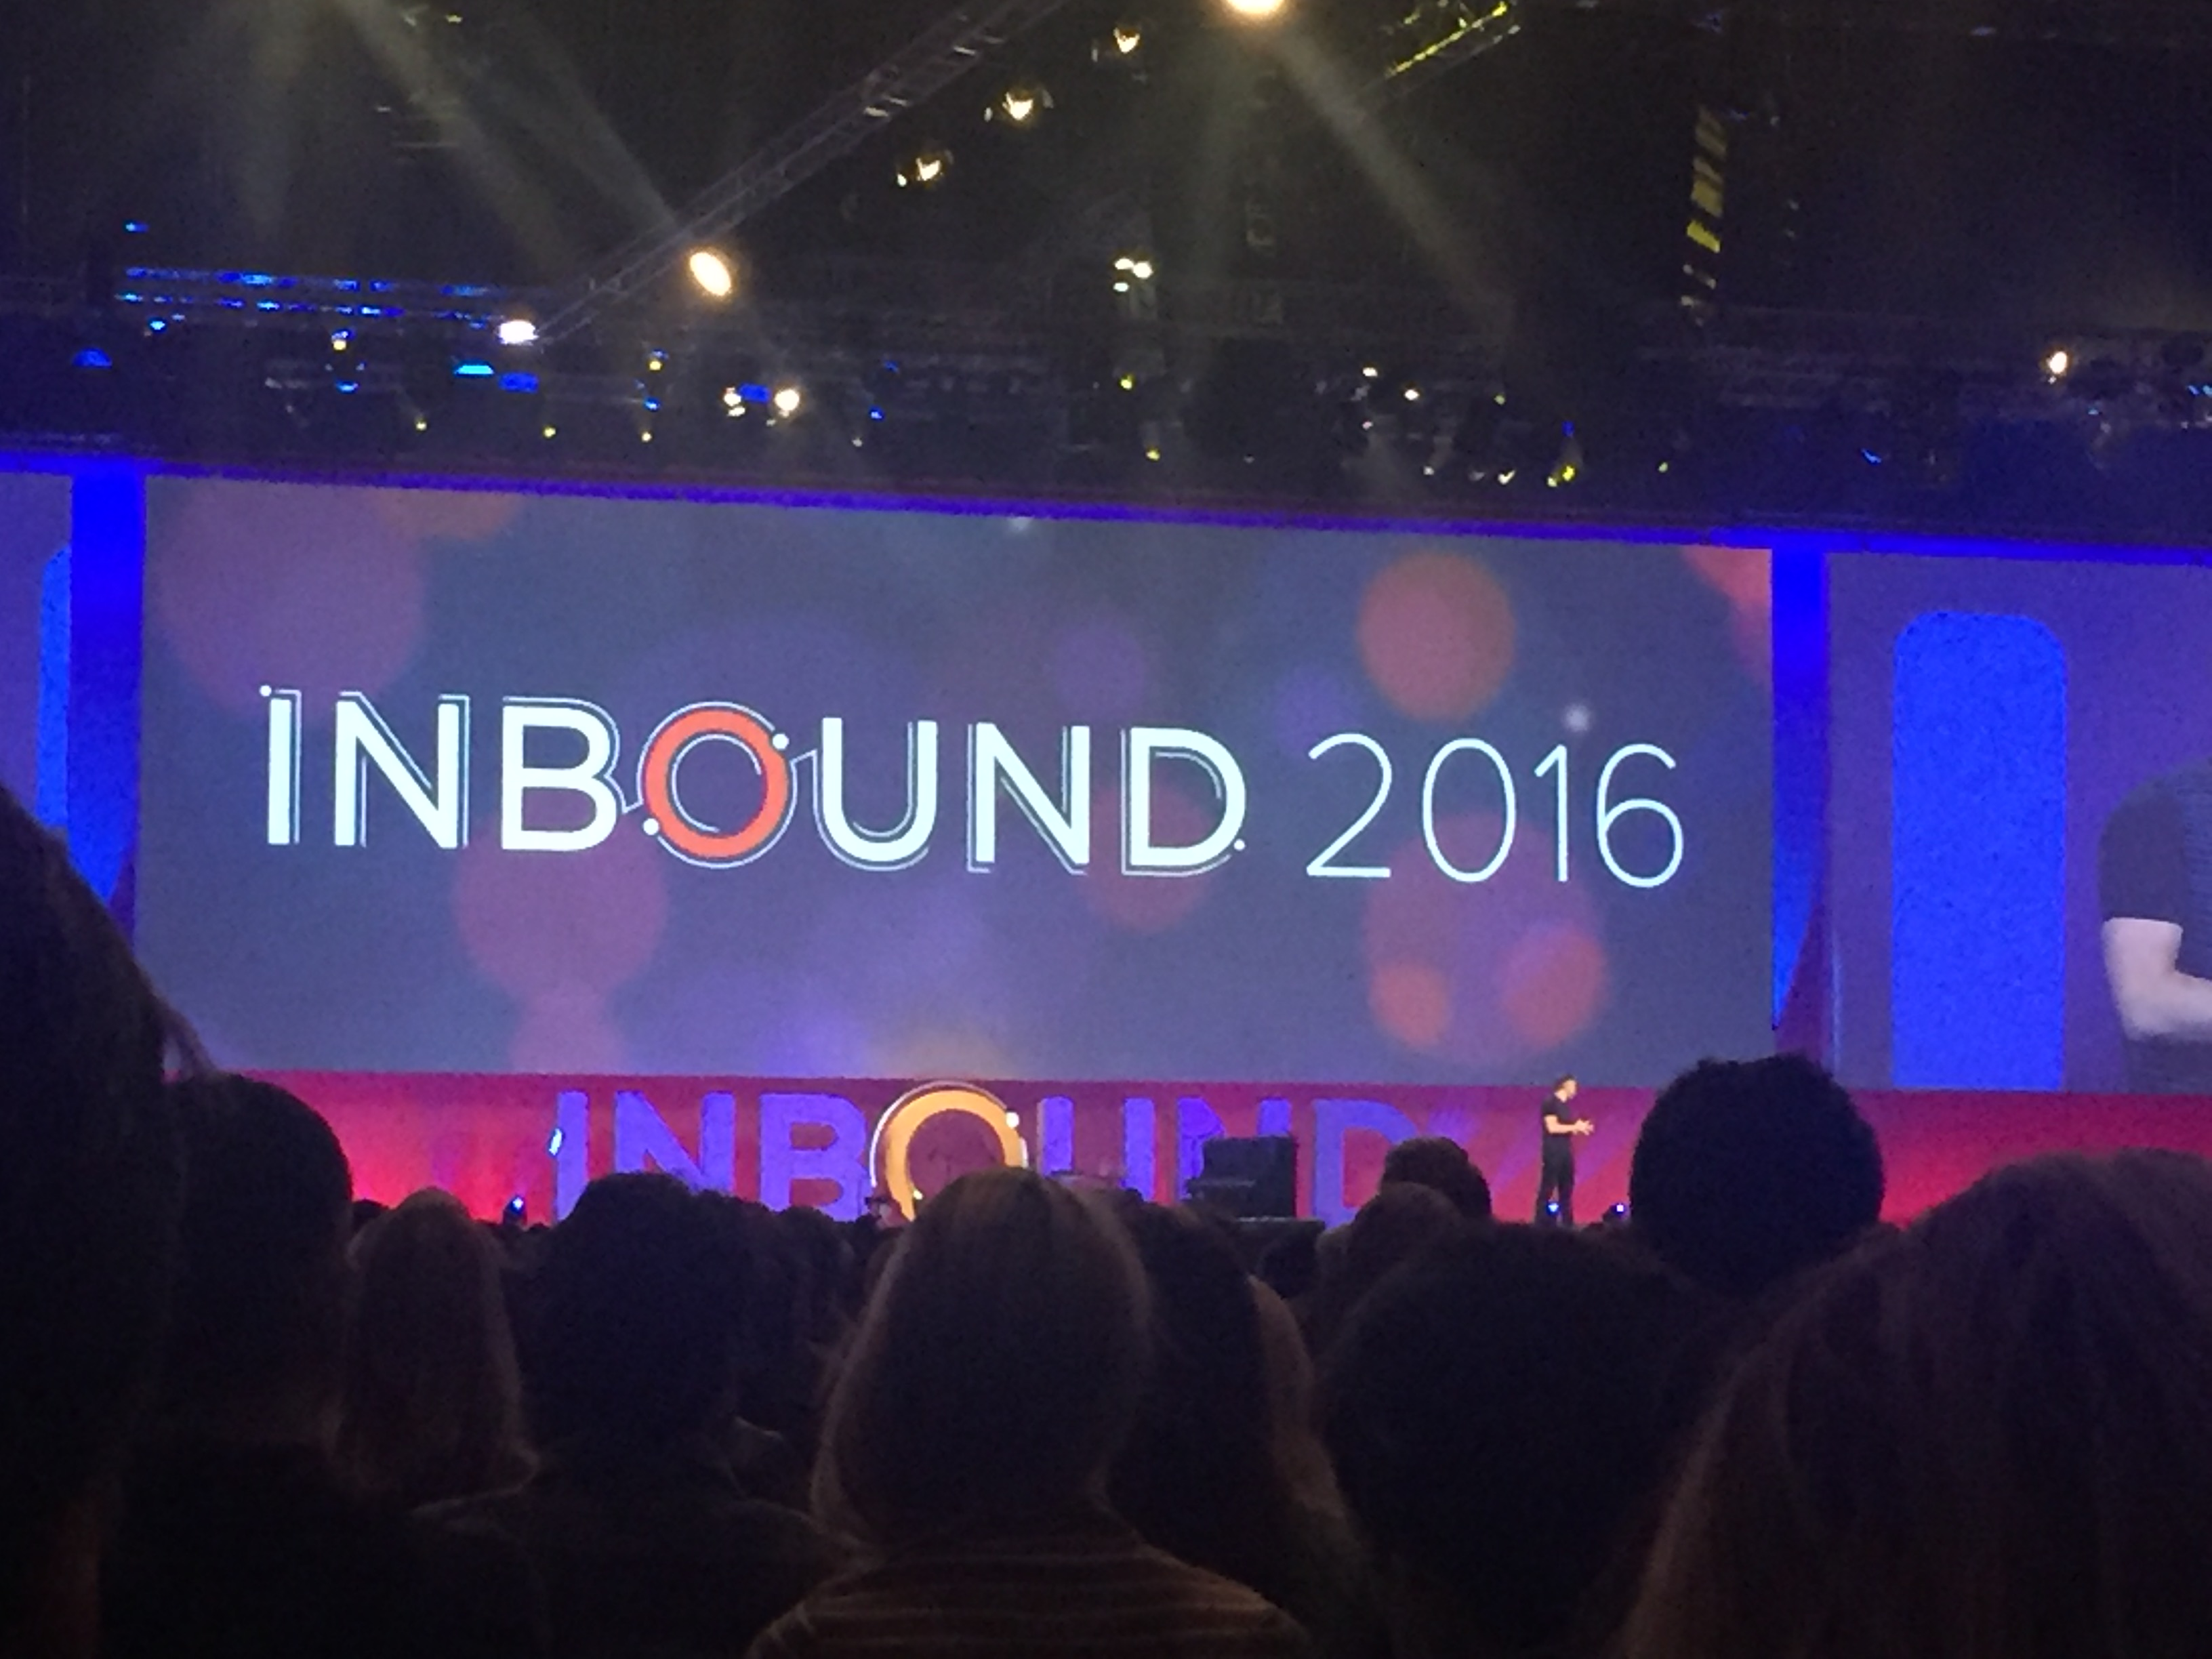 Key takeaways from #INBOUND2016